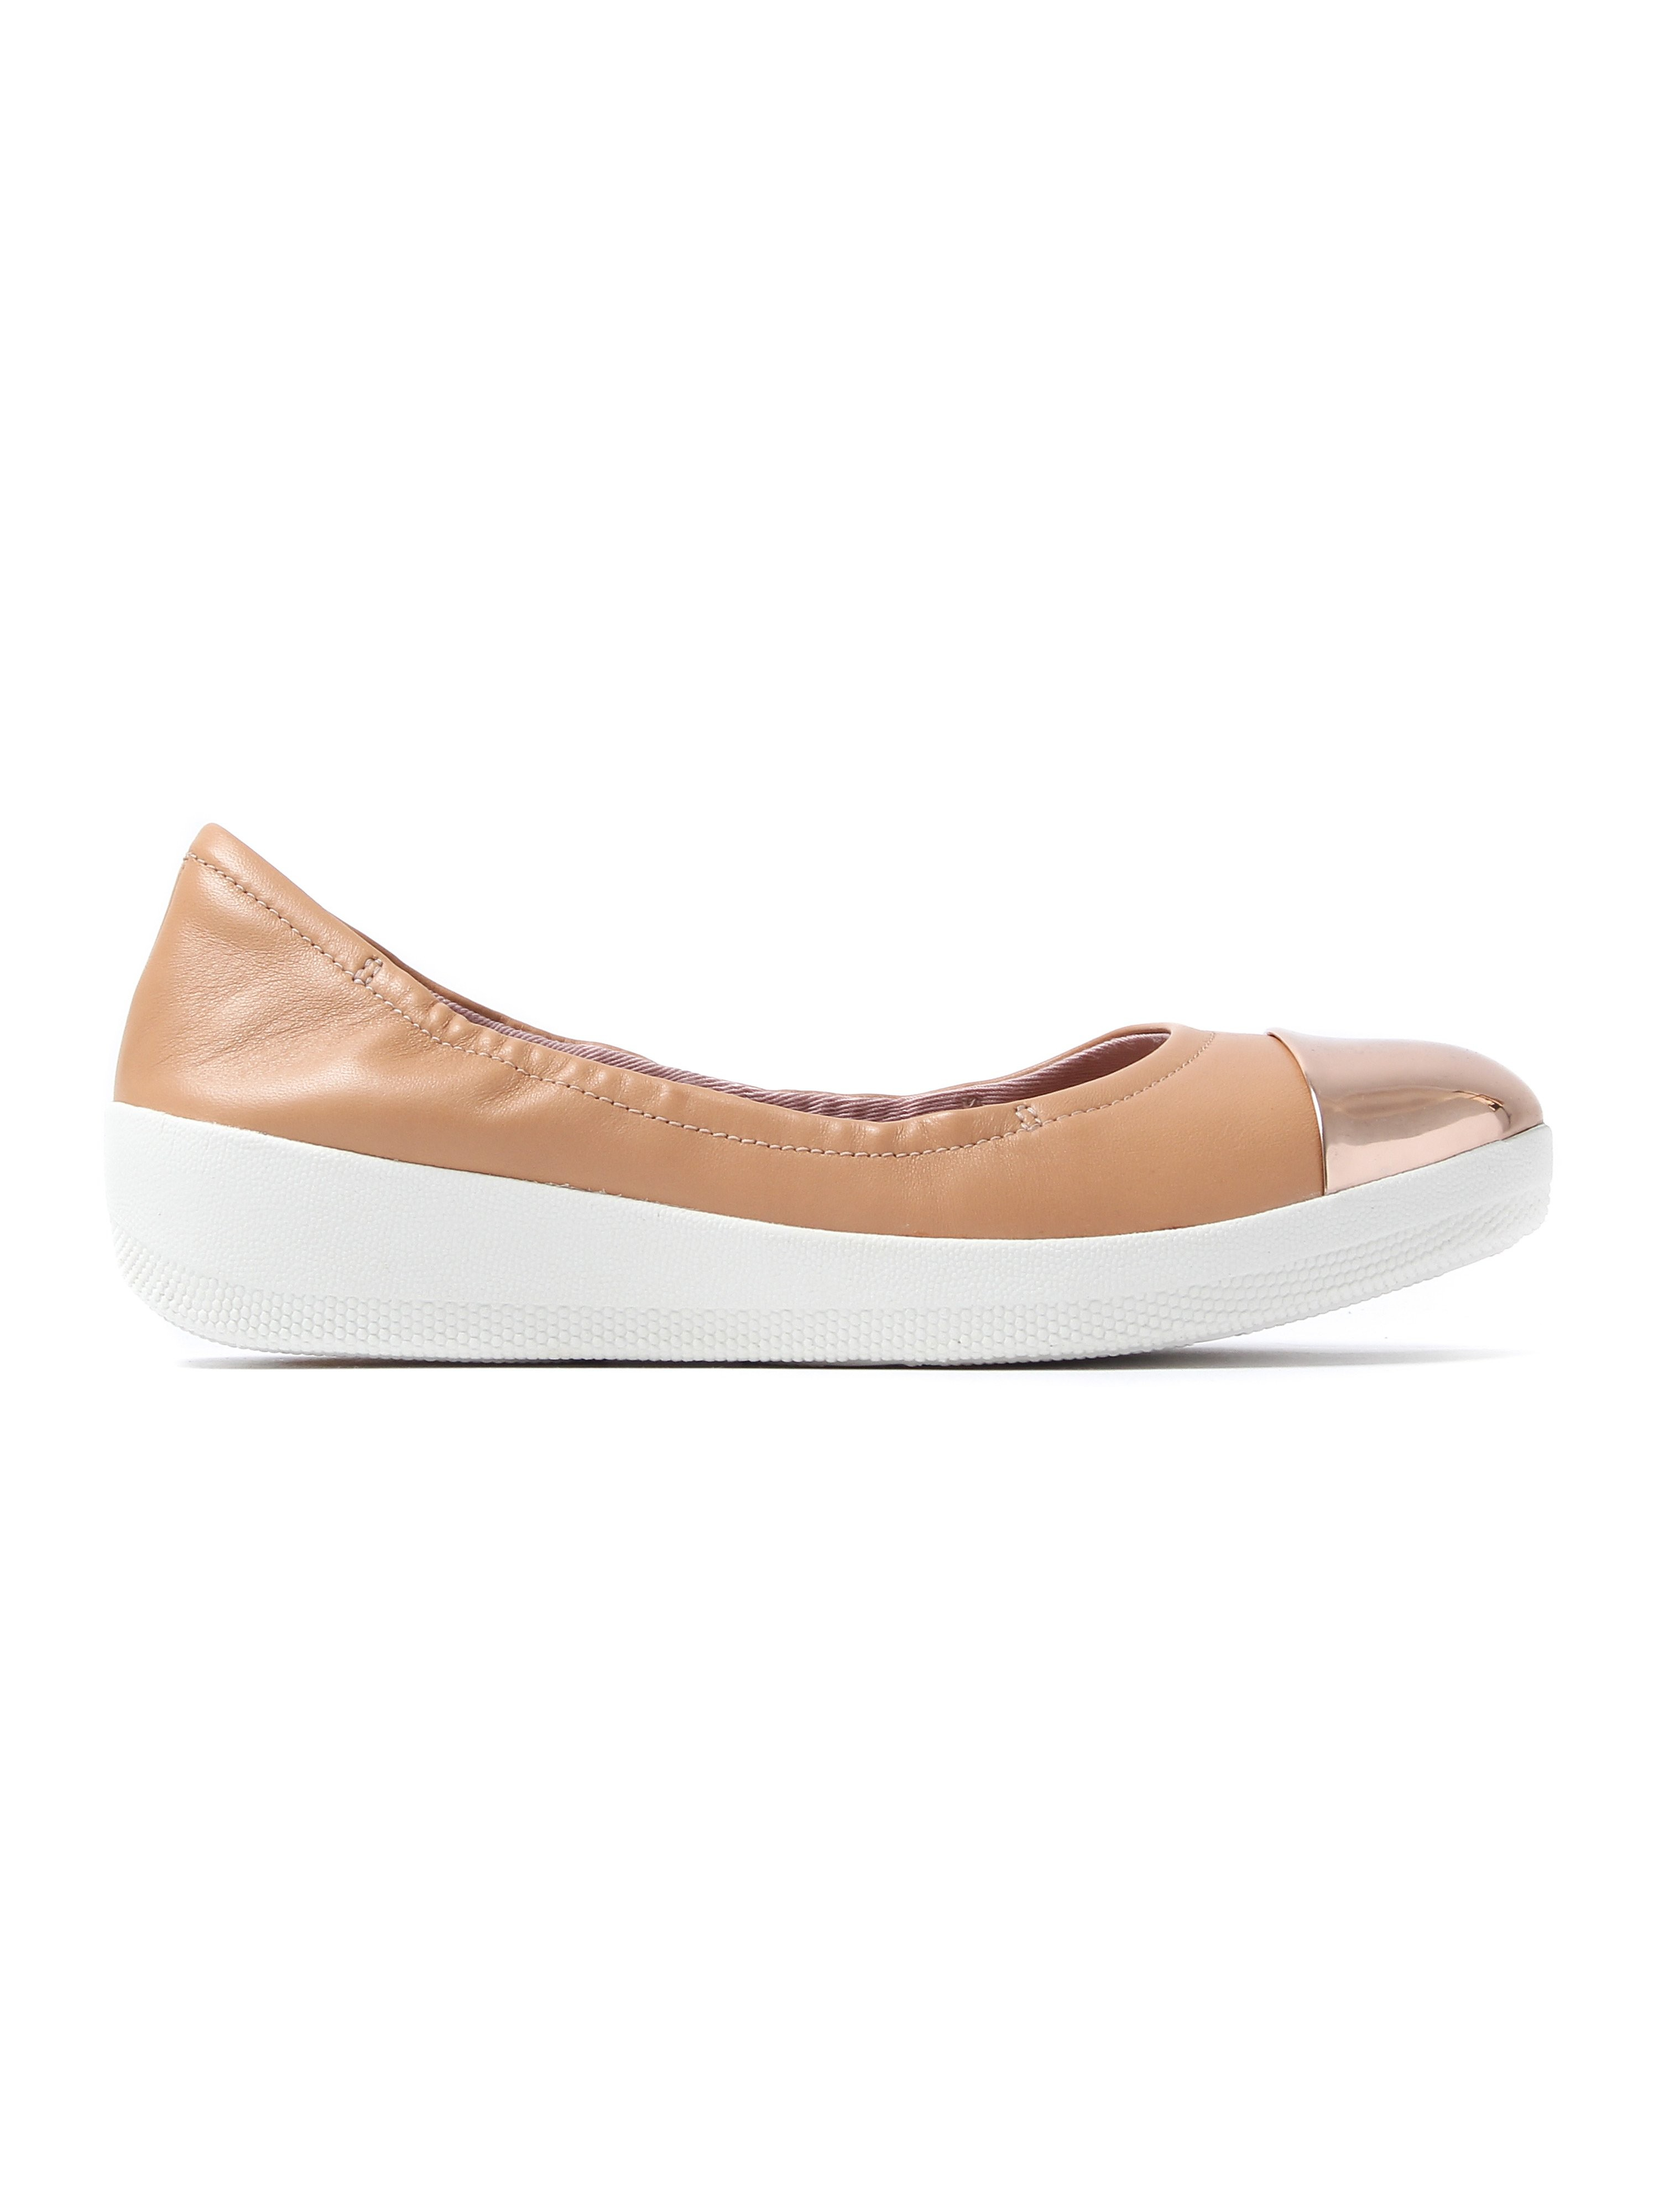 FitFlop Women's Superbendy Mirror-Toe Ballerinas - Nude Leather